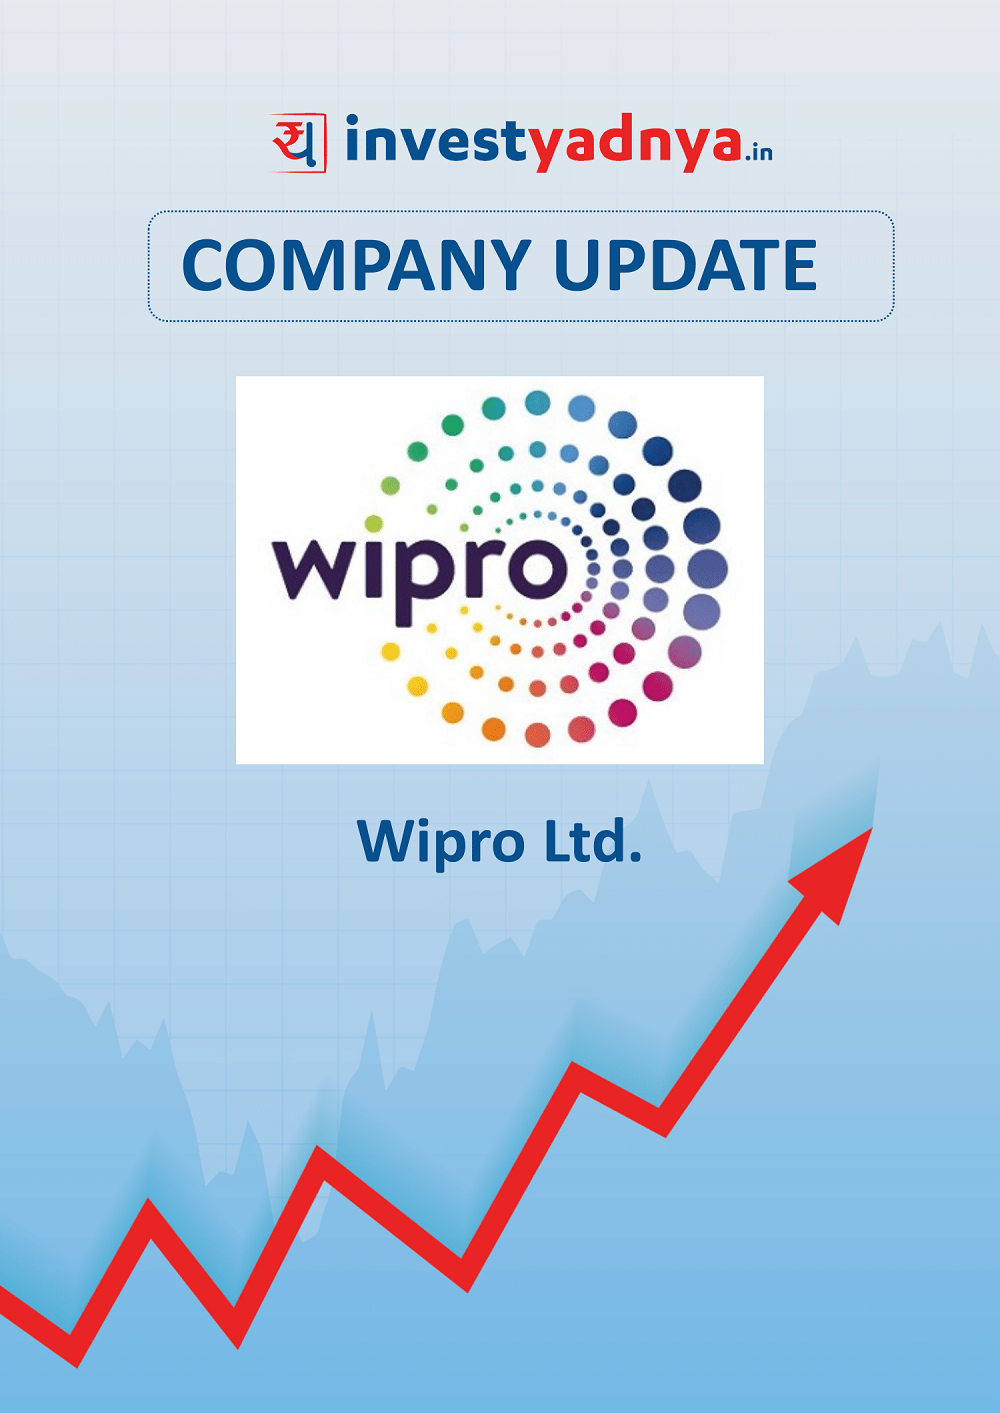 Wipro Ltd. is a Short and sweet analysis of the company which contains a brief overview of the company both from a qualitative and financial perspective. Date of update - 31st July 2019.